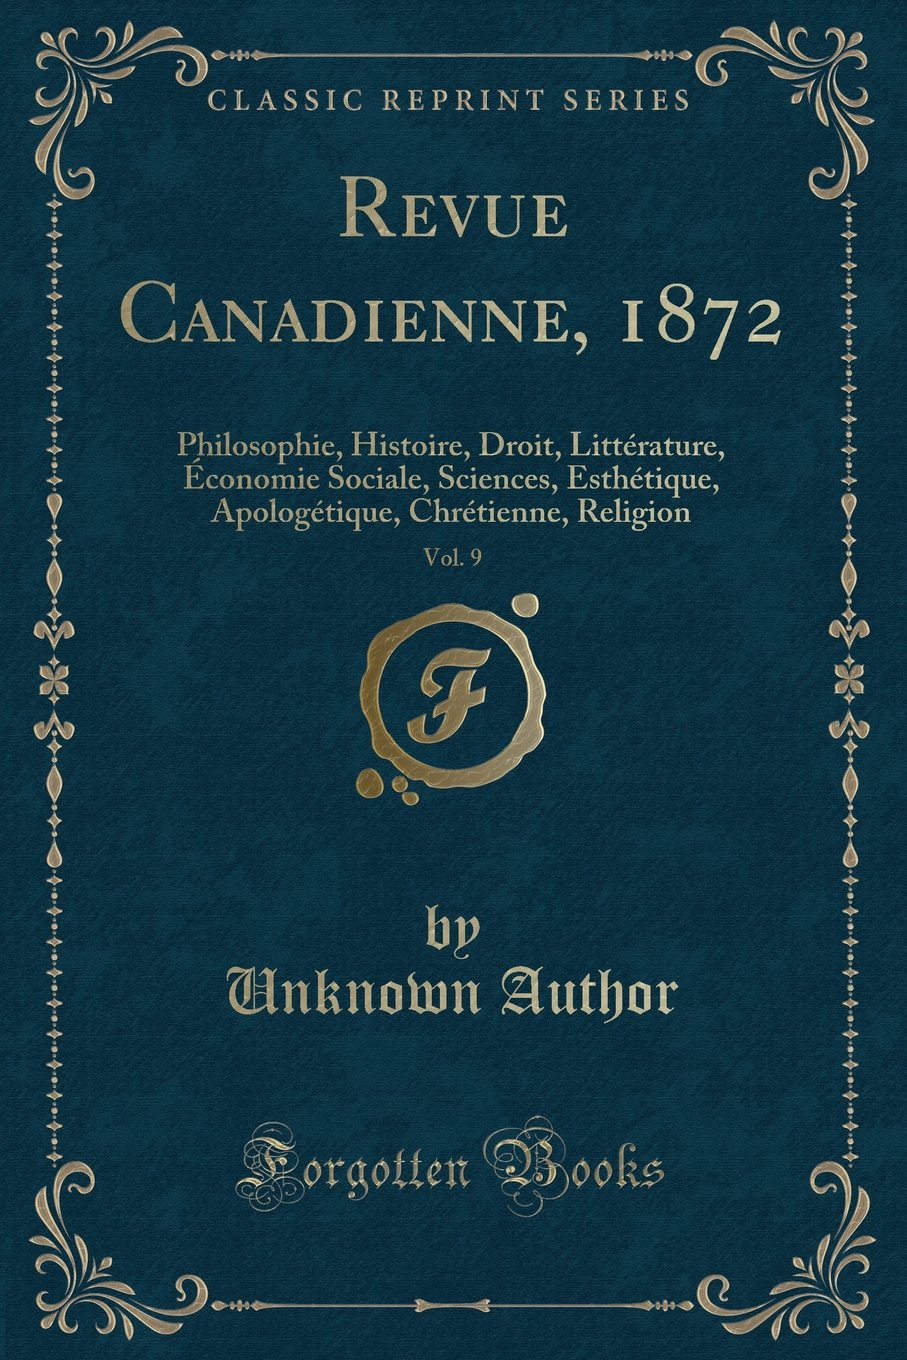 Revue Canadienne, 1872, Vol. 9: Philosophie, Histoire, Droit, Littérature, Économie Sociale, Sciences, Esthétique, Apologétique, Chrétienne, Religion (Classic Reprint) (French Edition) ebook